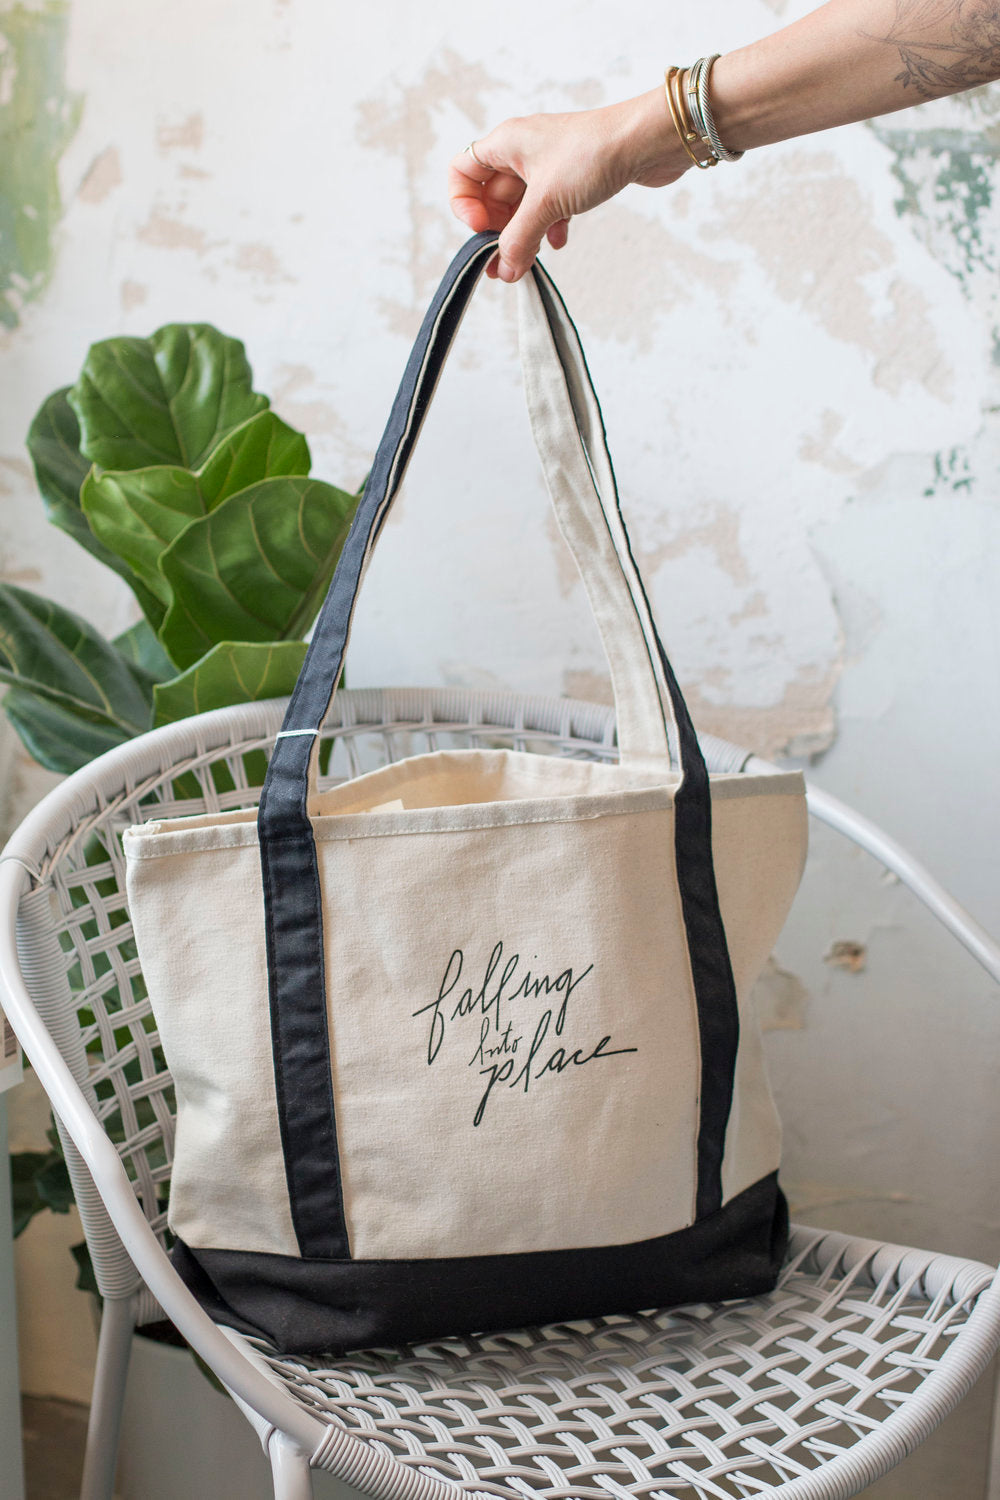 Falling Into Place tote